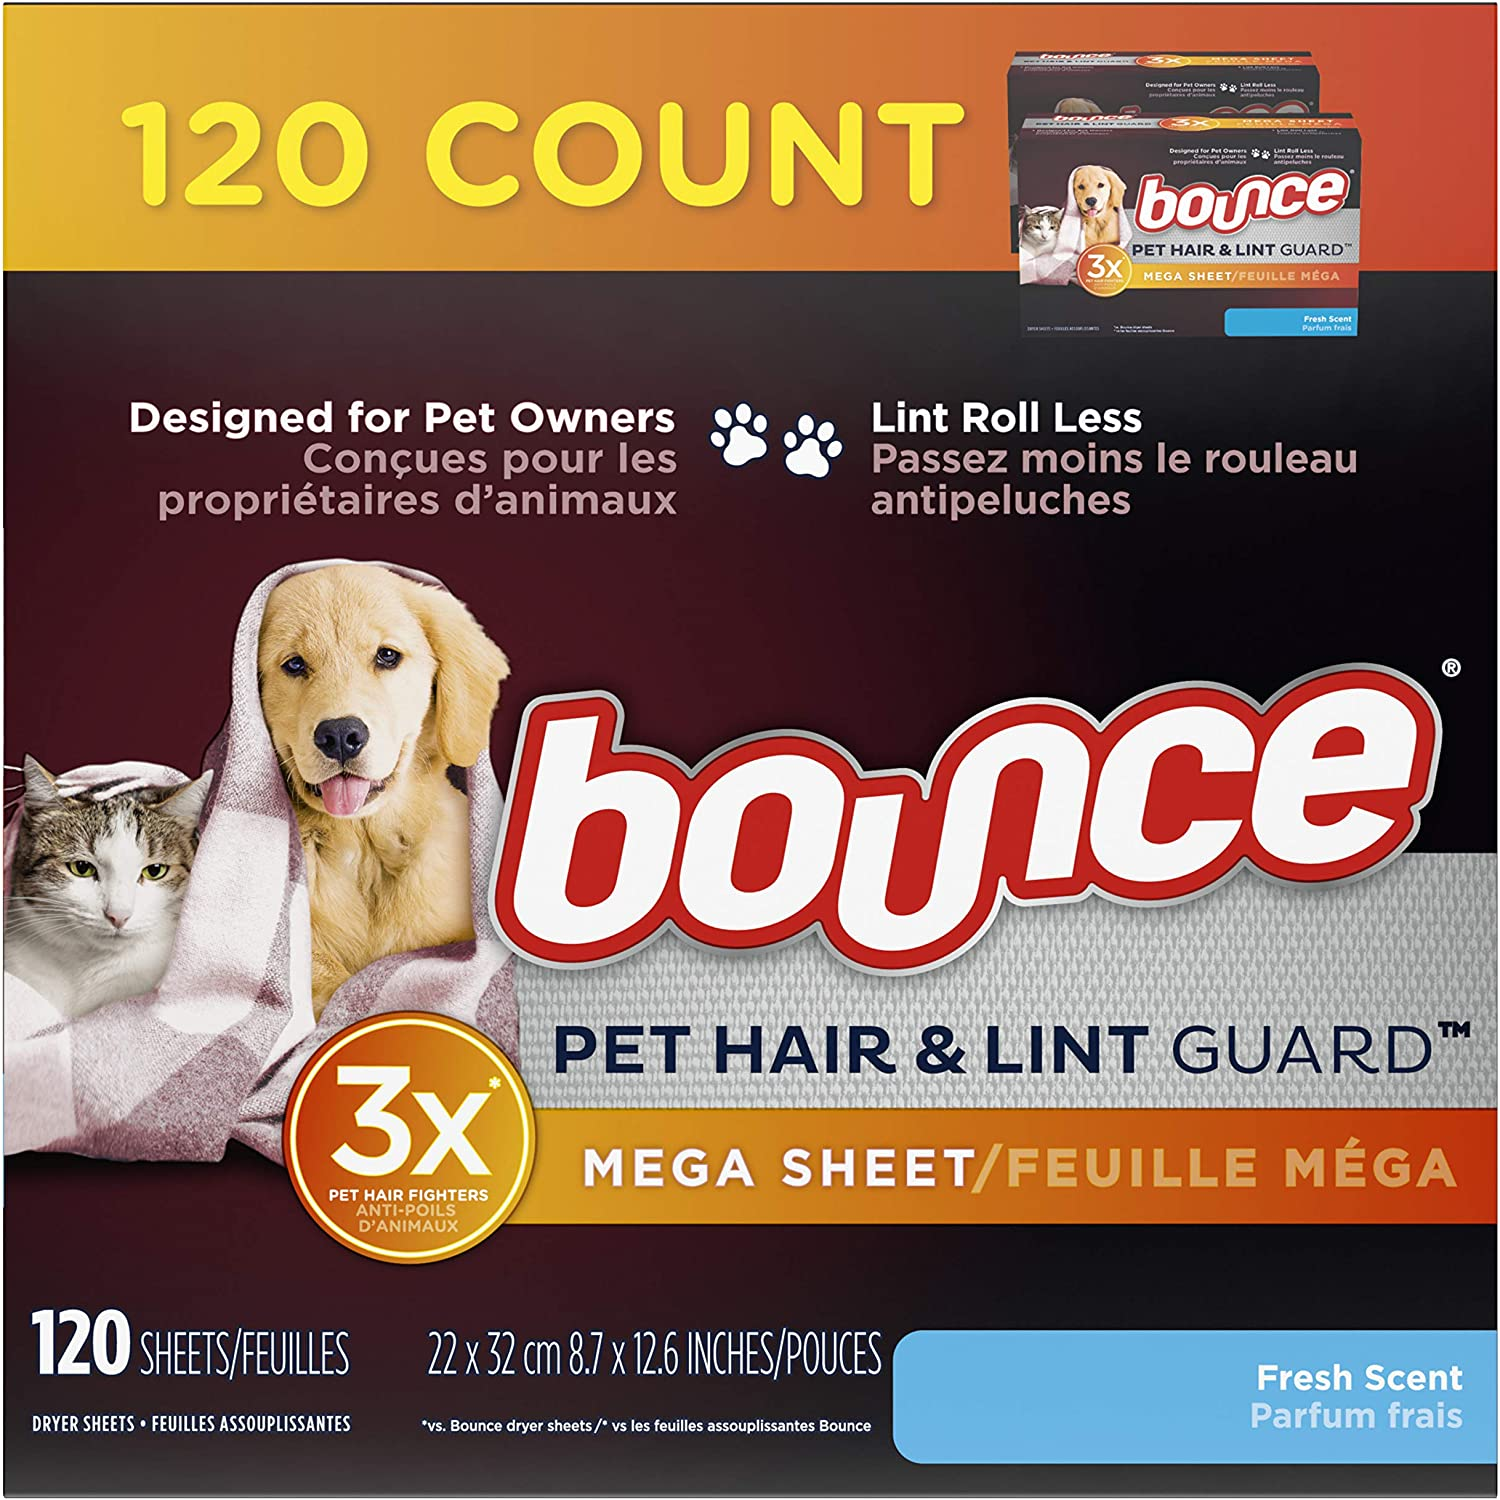 Best Stocking Stuffer – Bounce Pet Hair and Lint Guard Mega Dryer Sheets with 3X Pet Hair Fighters